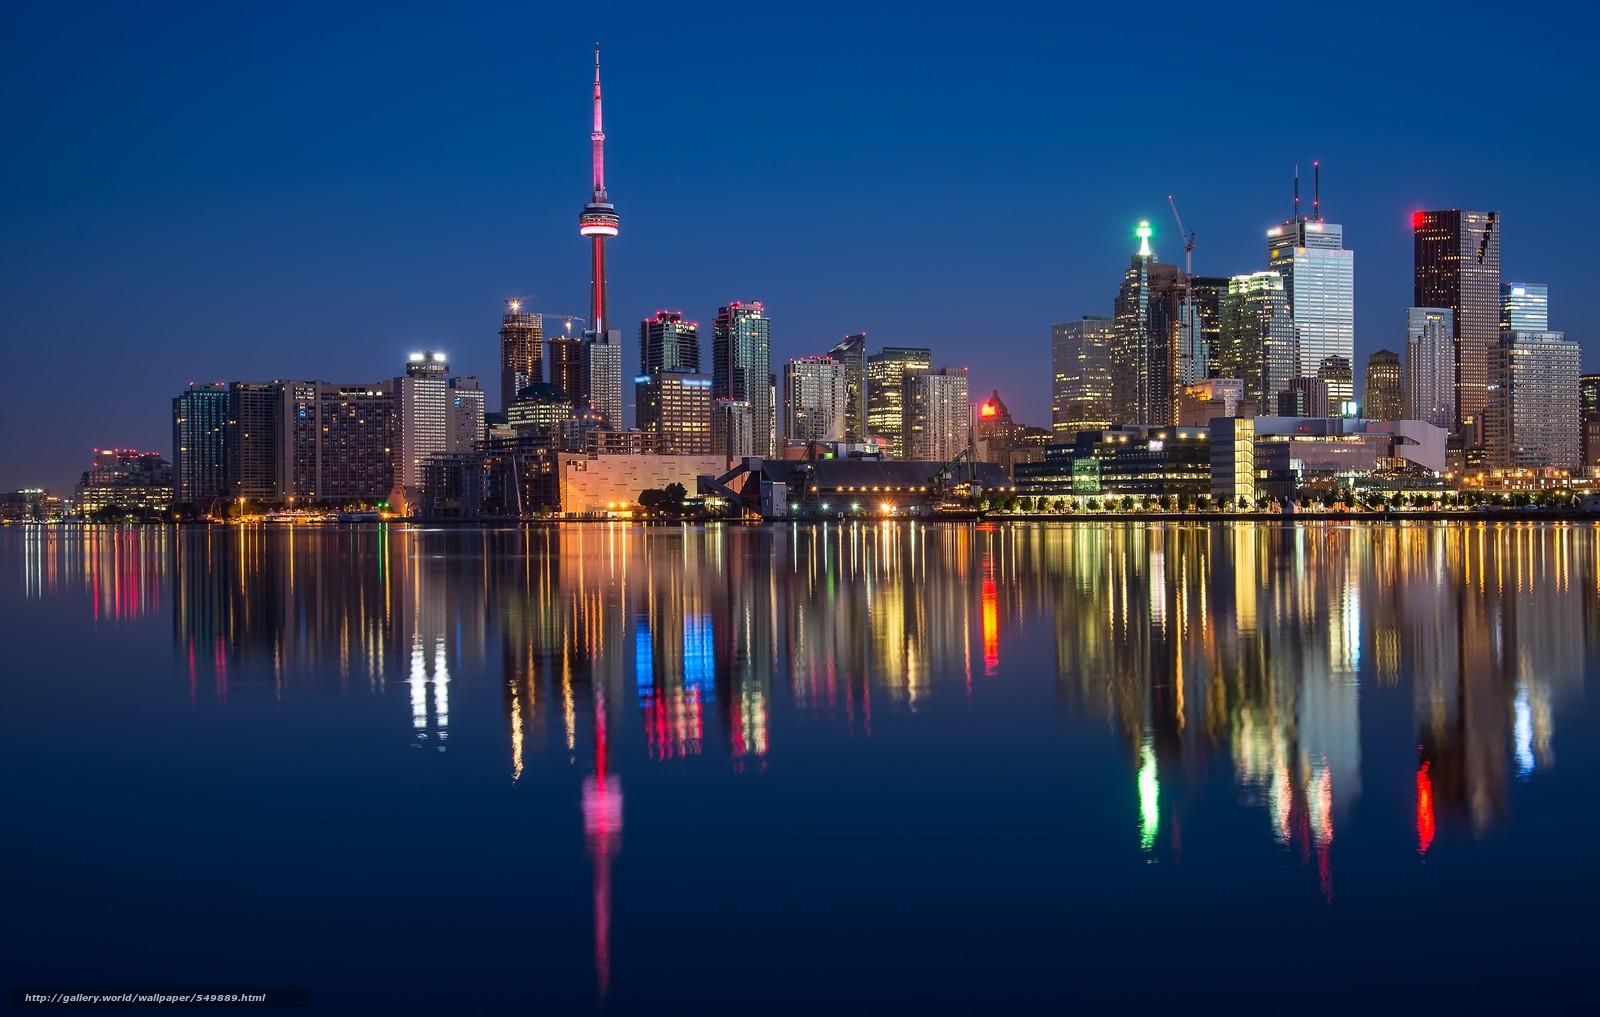 Download wallpaper Toronto Ontario Canada desktop wallpaper in 1600x1017